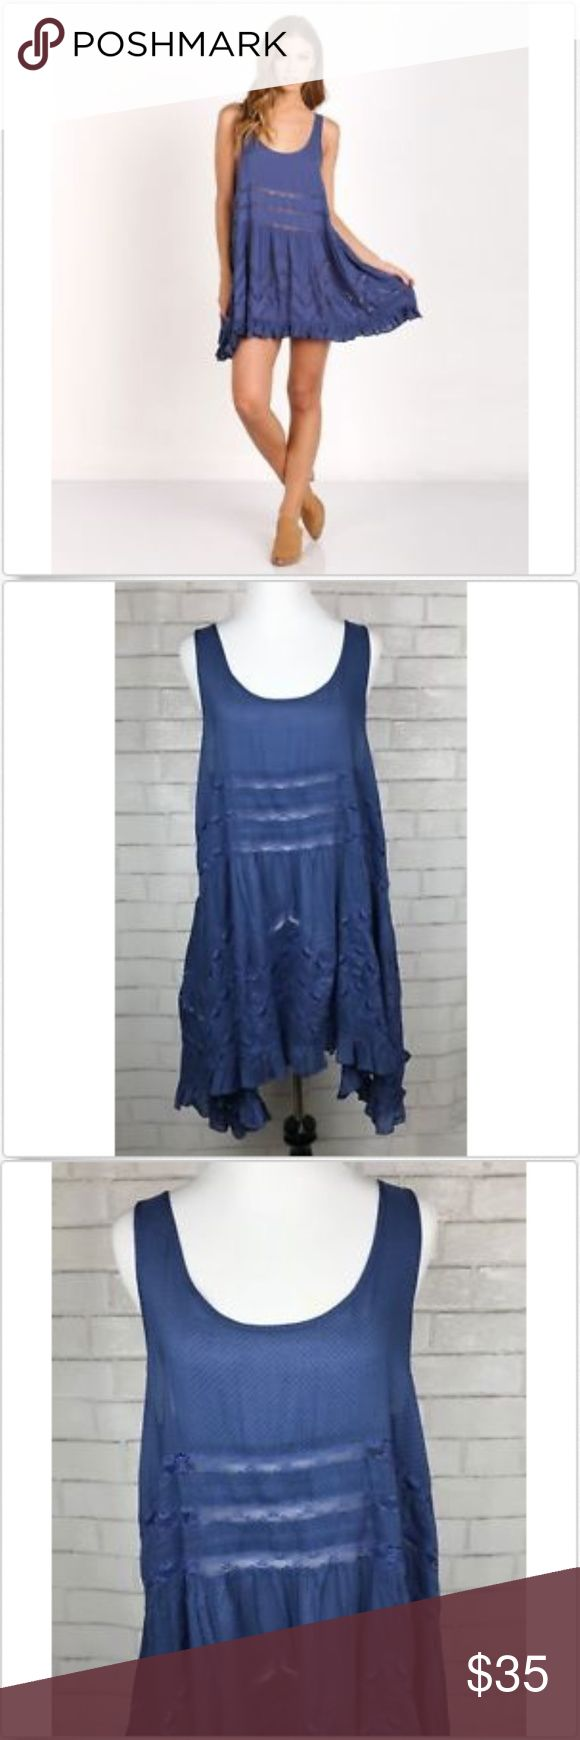 "NEW Free People Voile Lace Trapeze Waterfall Slip NWT Free People Blue Voile and Lace Trapeze Waterfall Slip Mini Dress Top size M  Measurements:   Armpit to Armpit: 18"" Length: 35""  (Picture owned by Free People) Free People Dresses Mini"